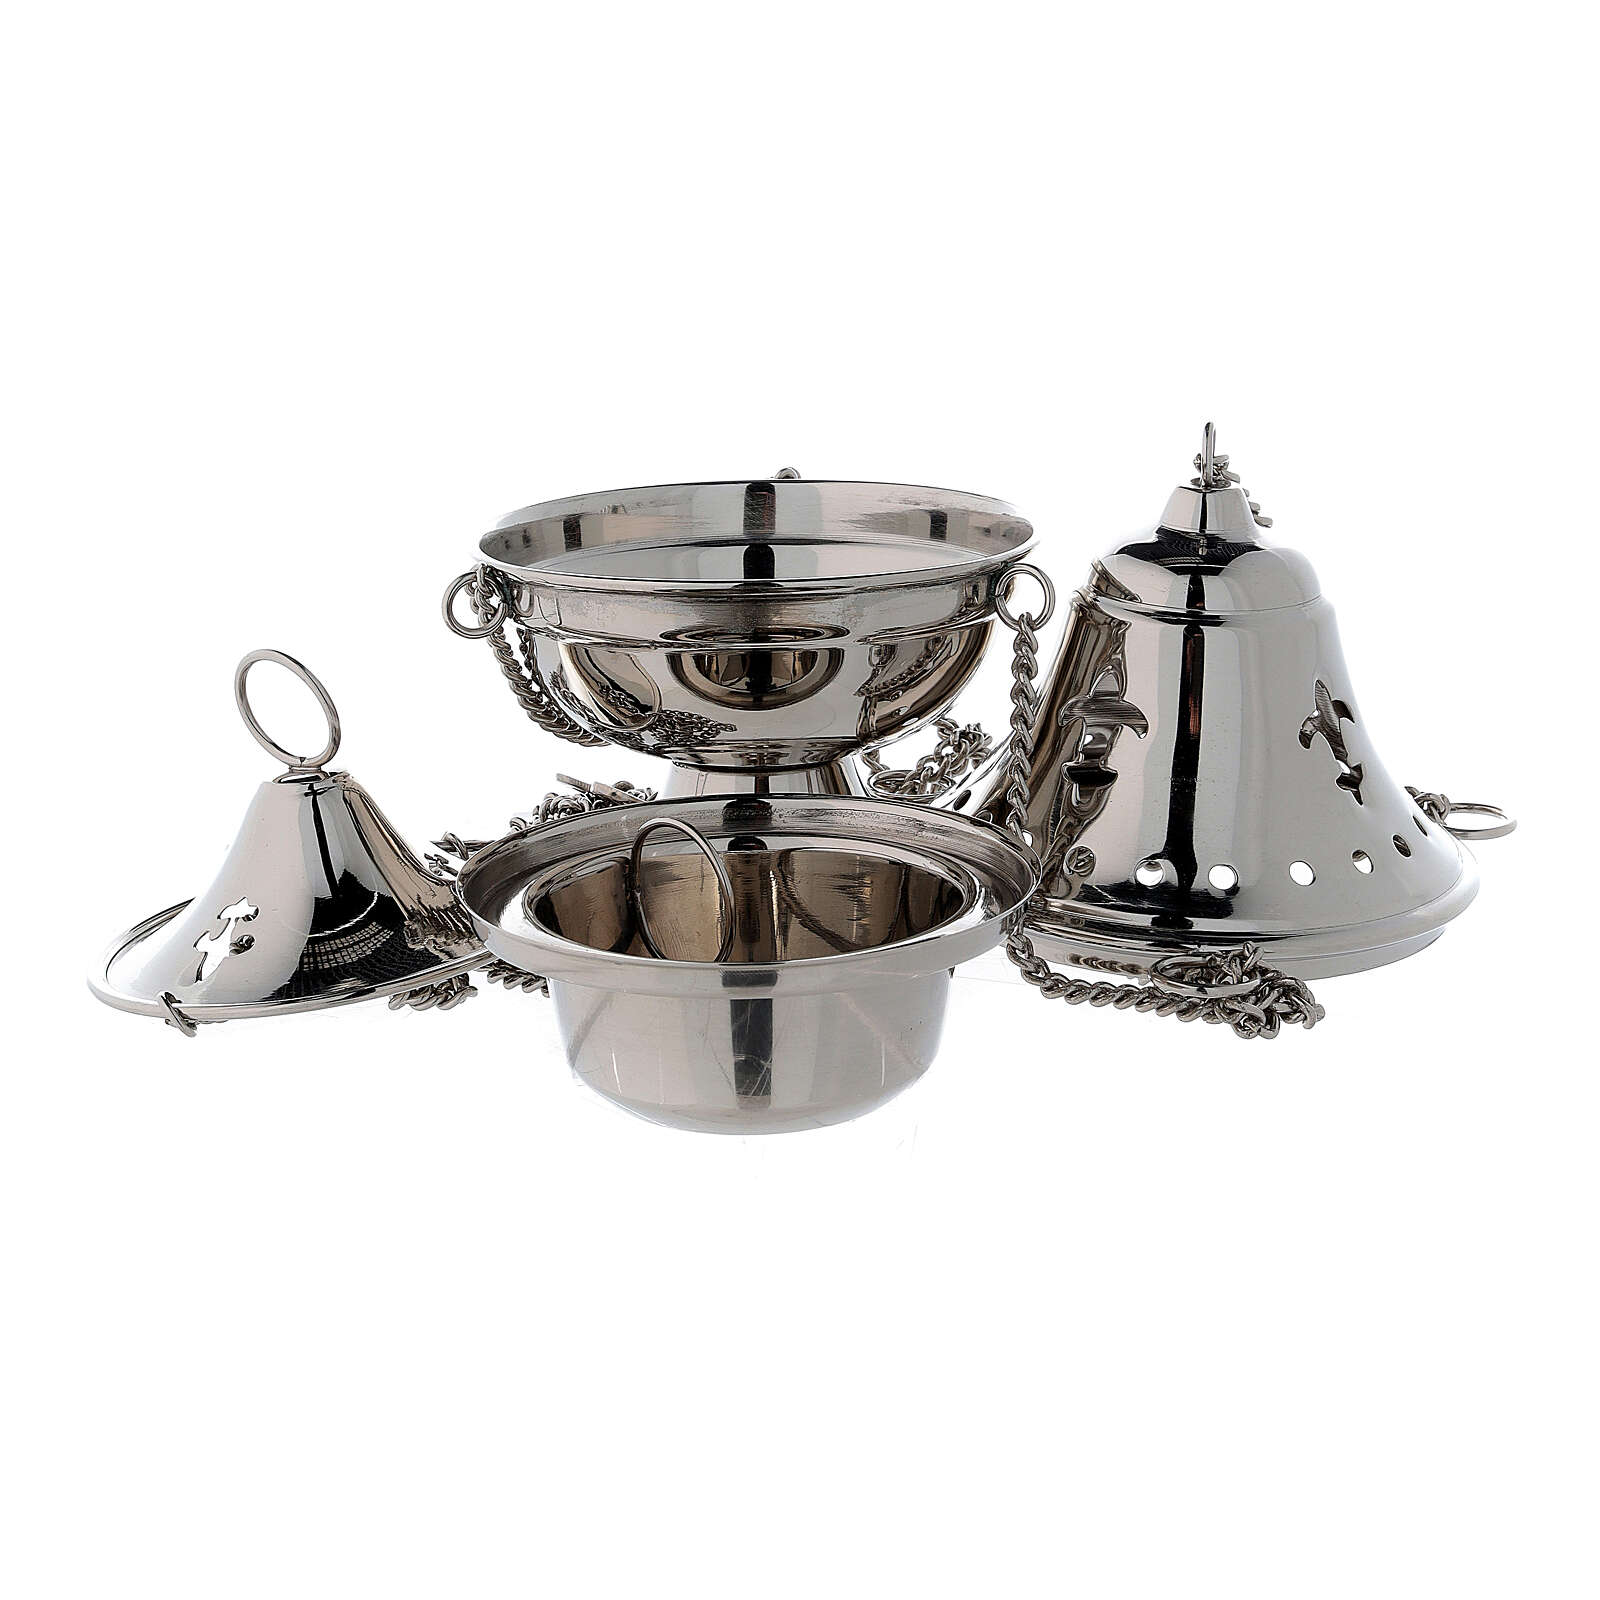 Nickel-plated brass thurible with bell shaped cover h 6 3/4 in 3